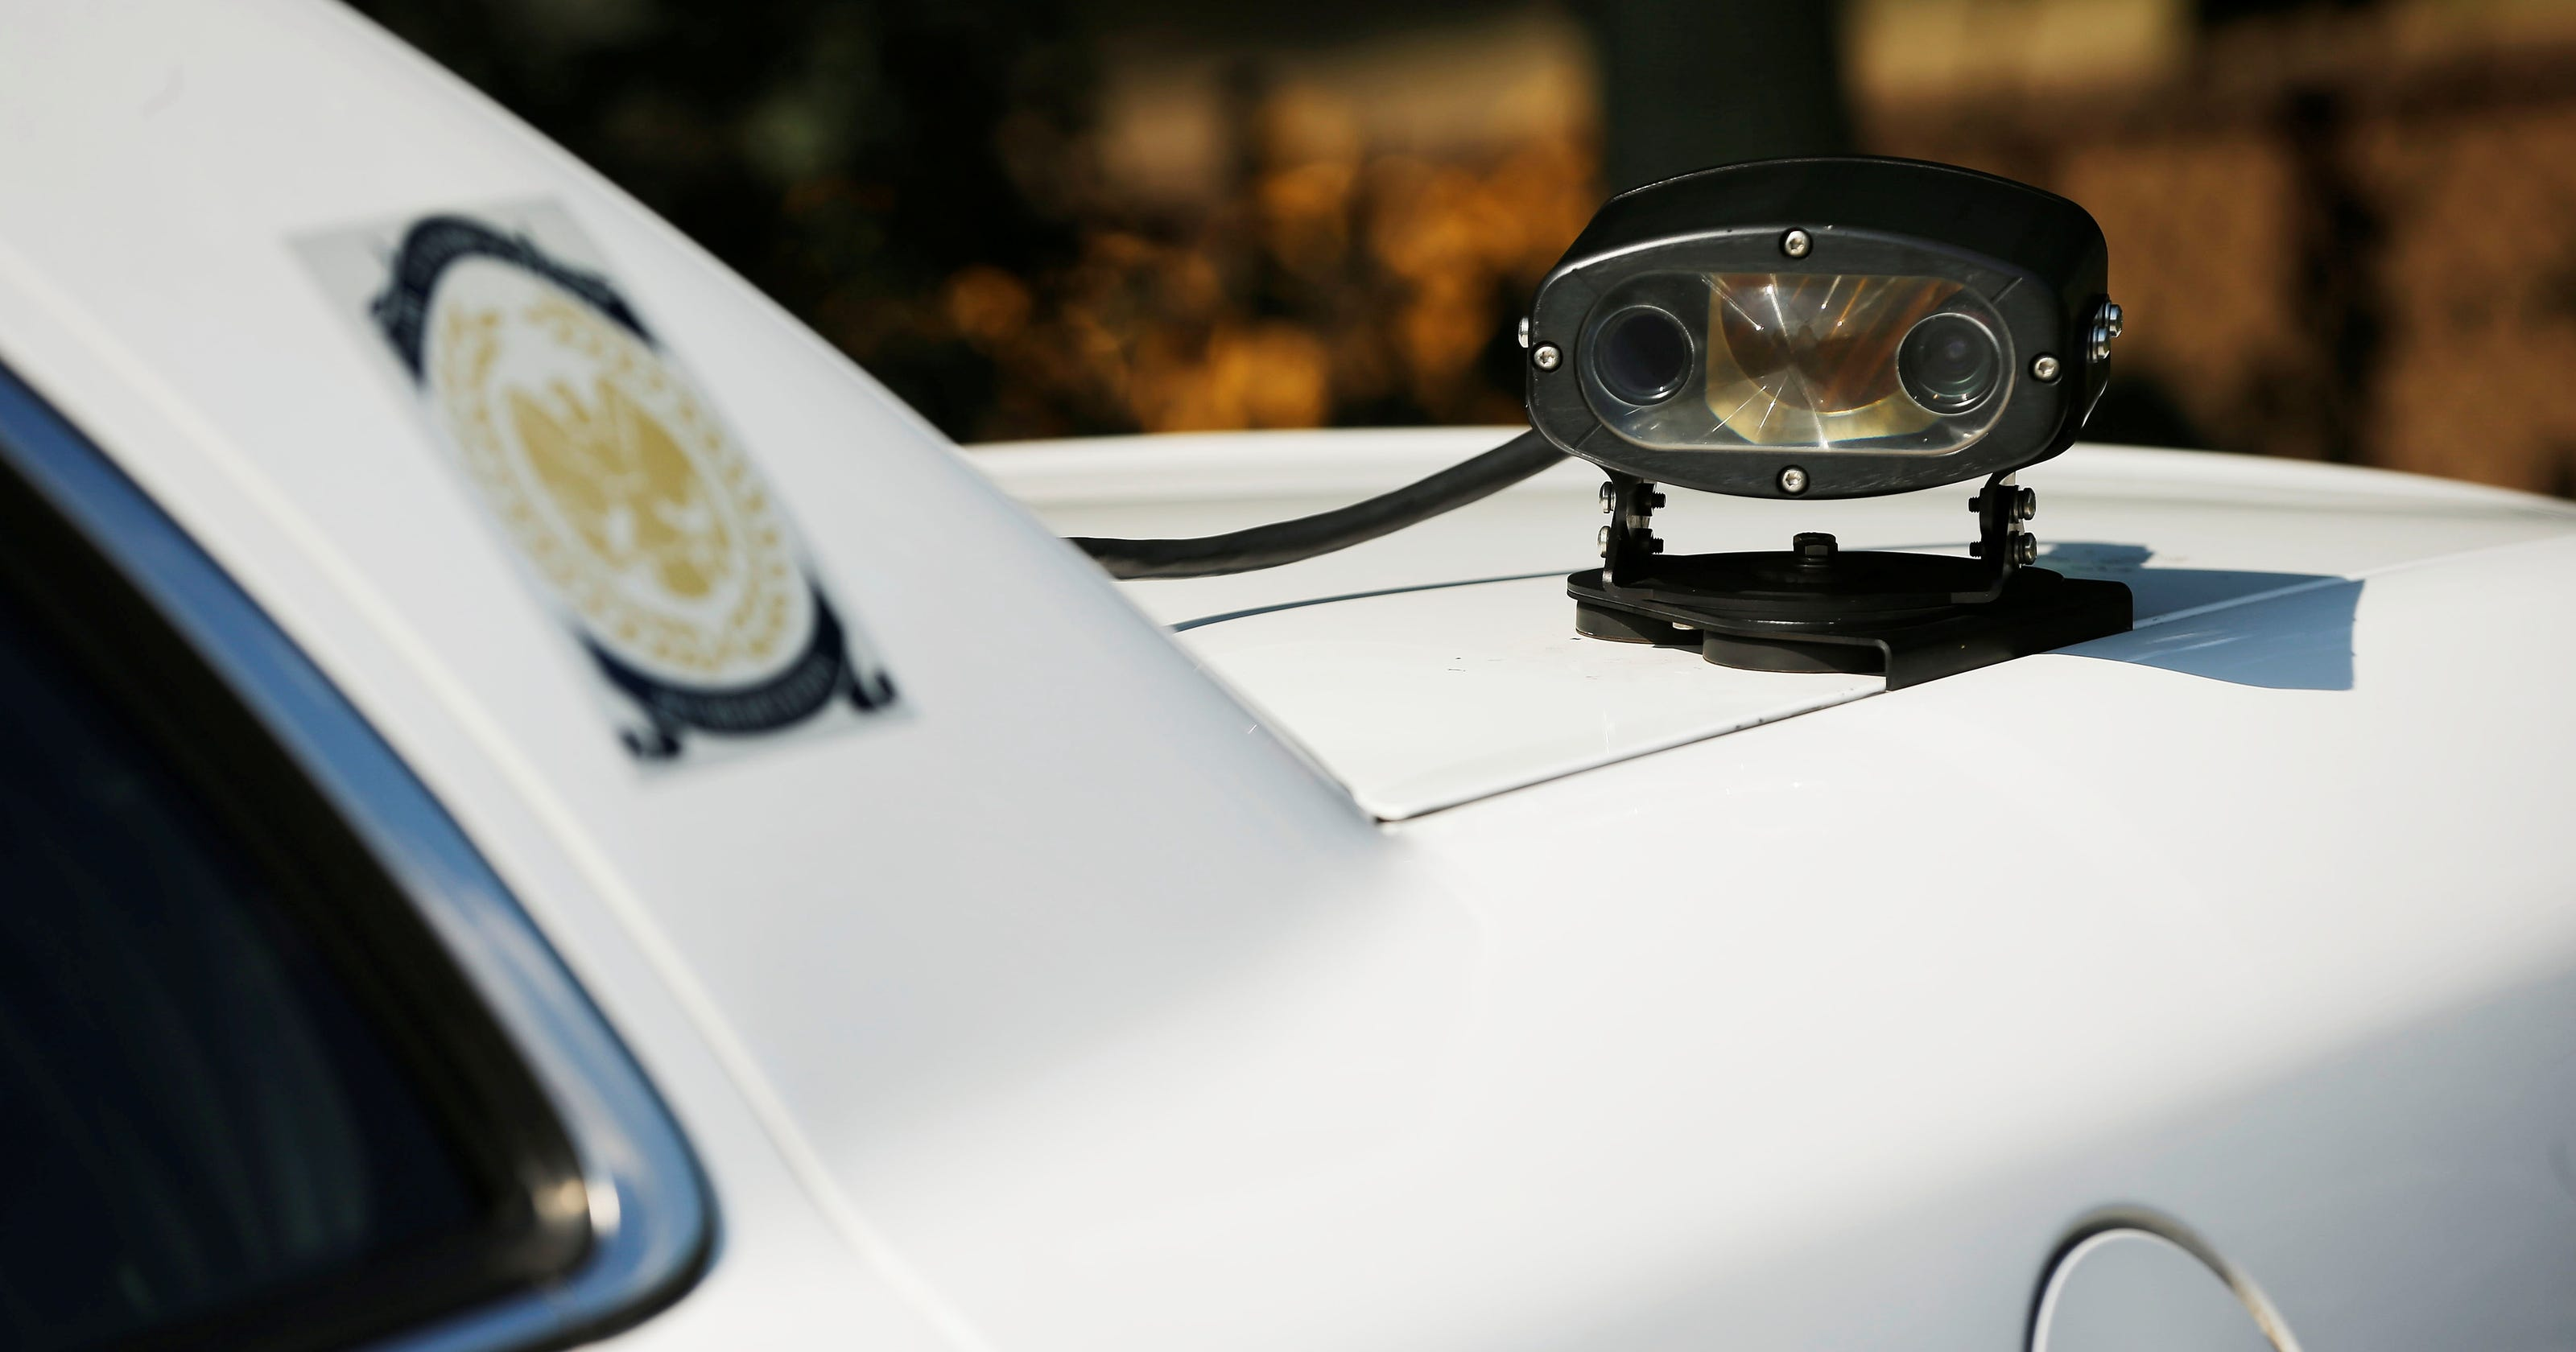 You can't hide from cops with license-plate scanners